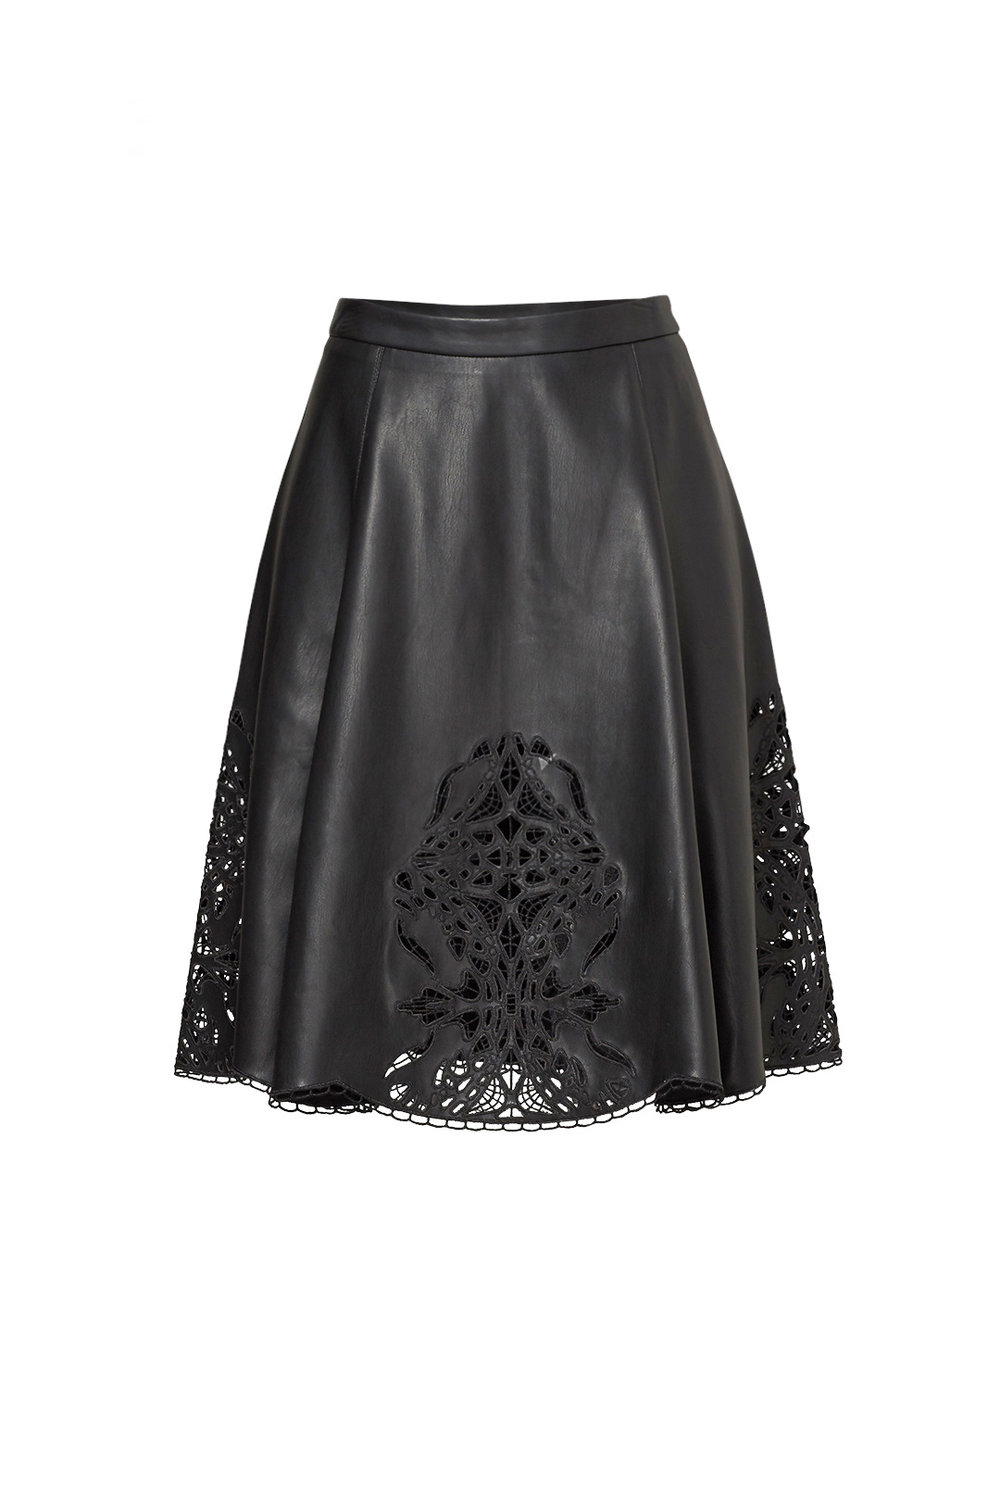 Black Faux Leather Skirt.jpg